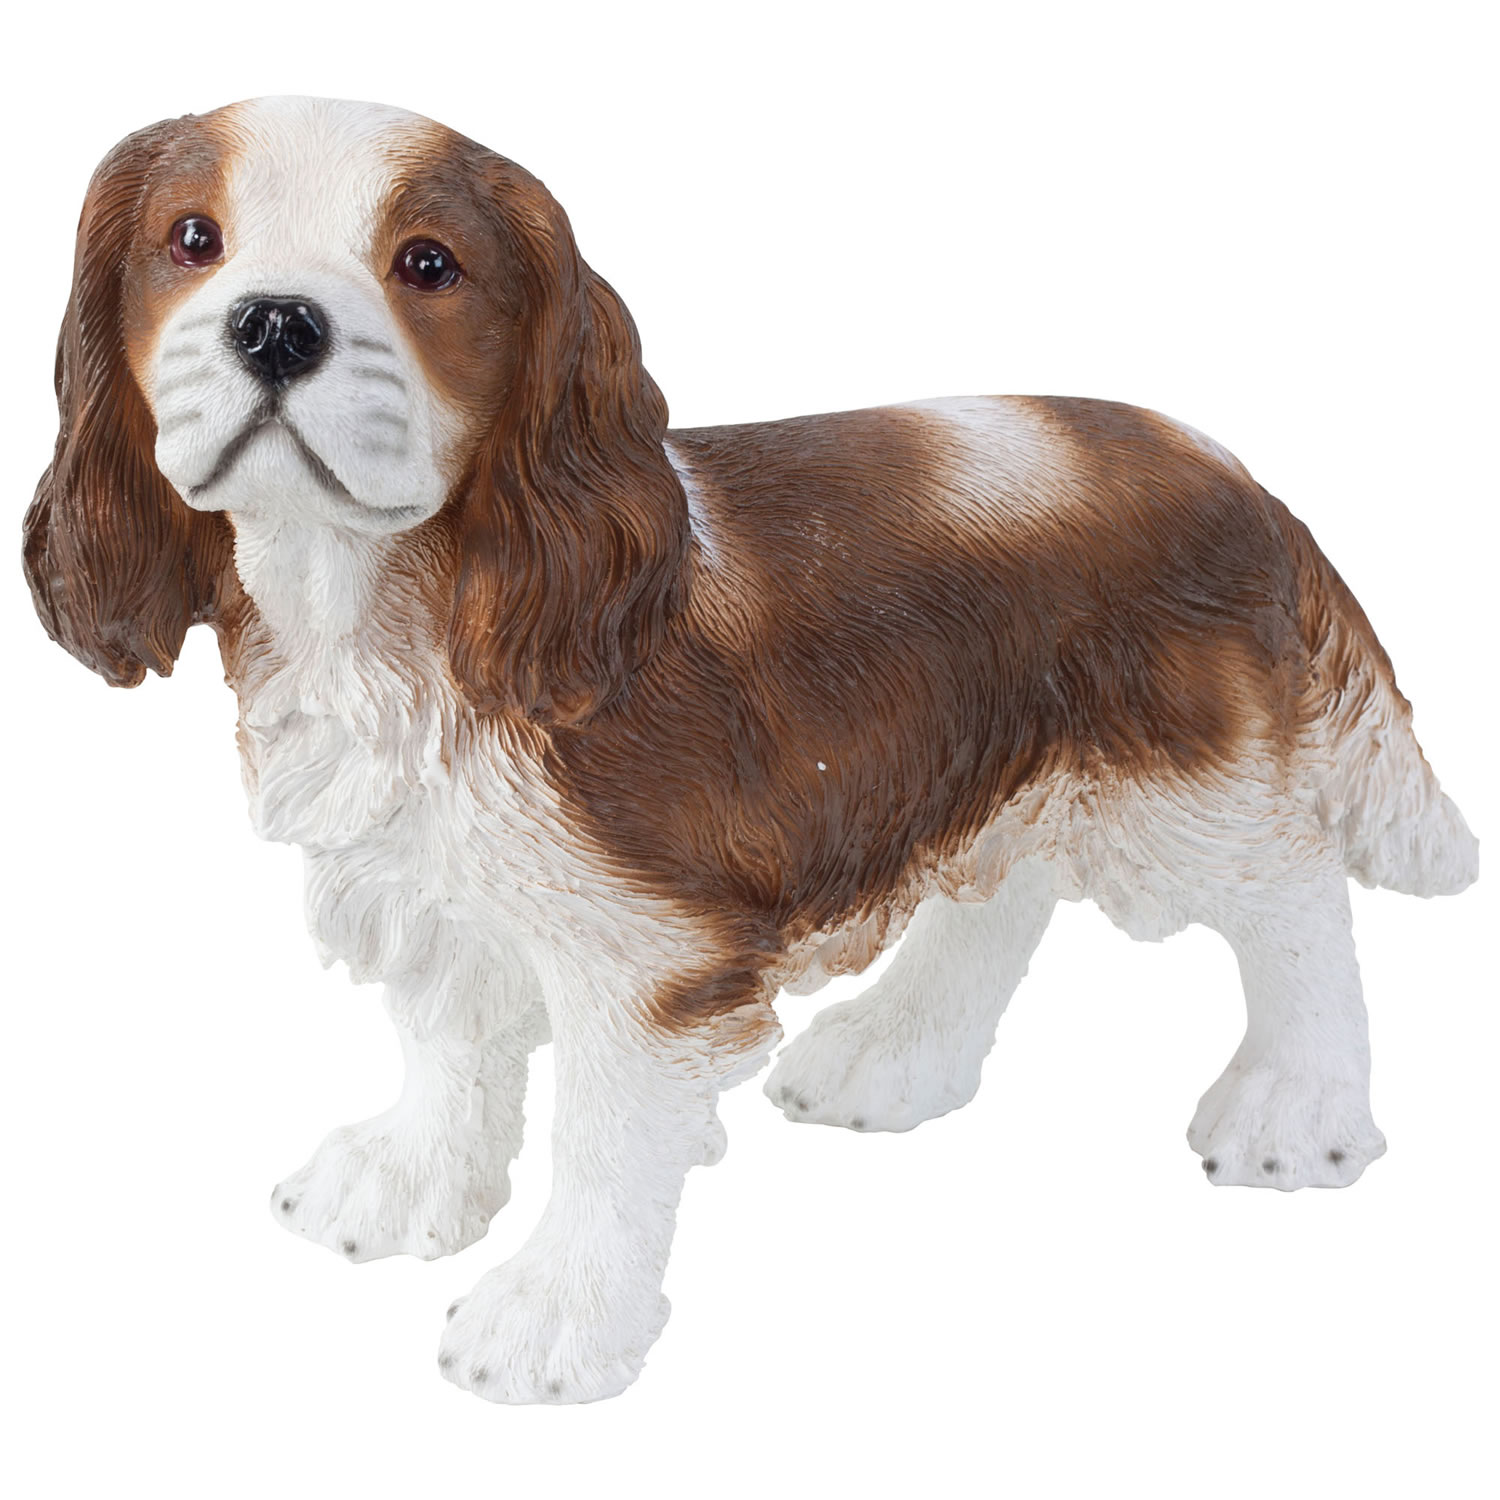 Realistic 30cm Standing King Charles Spaniel Dog Statue